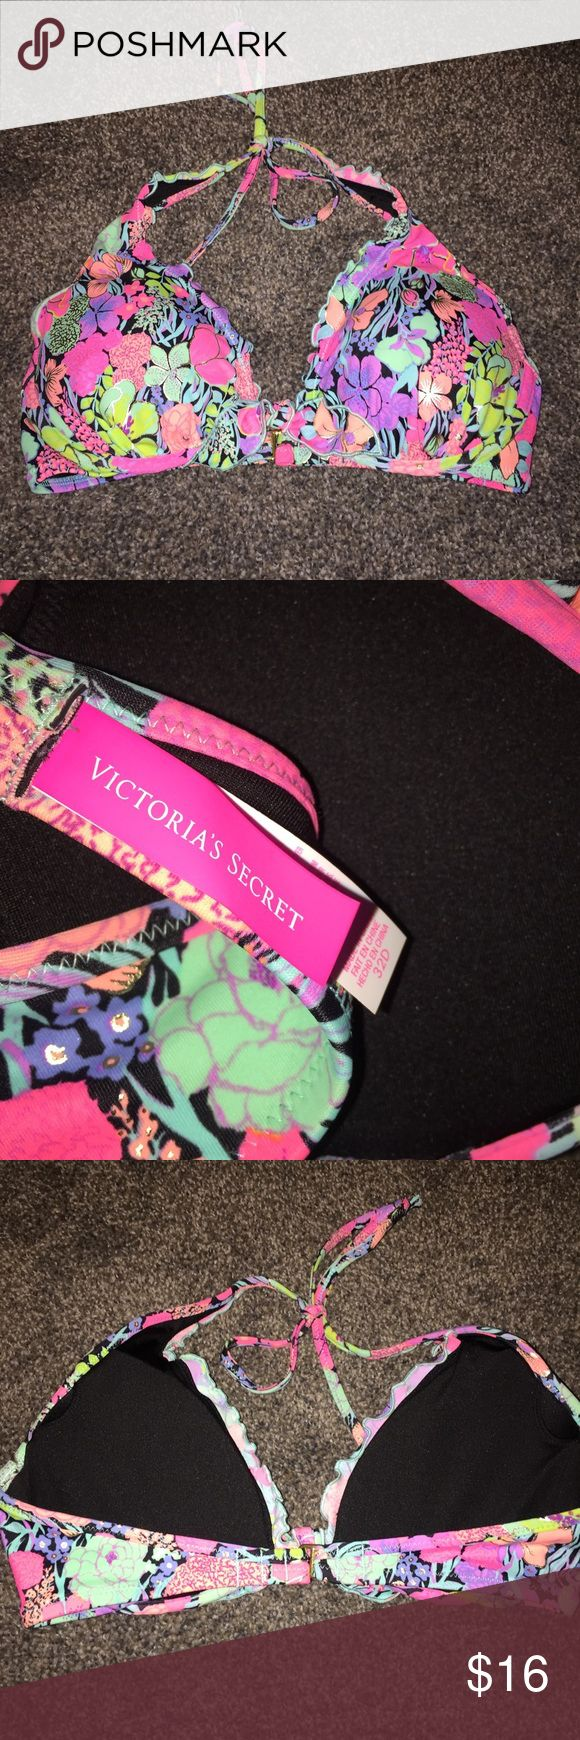 Victoria's Secret floral bikini top Victoria's Secret bright pink colorful floral printed bikini top, halter style size 32D. never worn, in perfect condition *feel free to use the offer button, every purchase comes with a free surprise gift :) Victoria's Secret Swim Bikinis